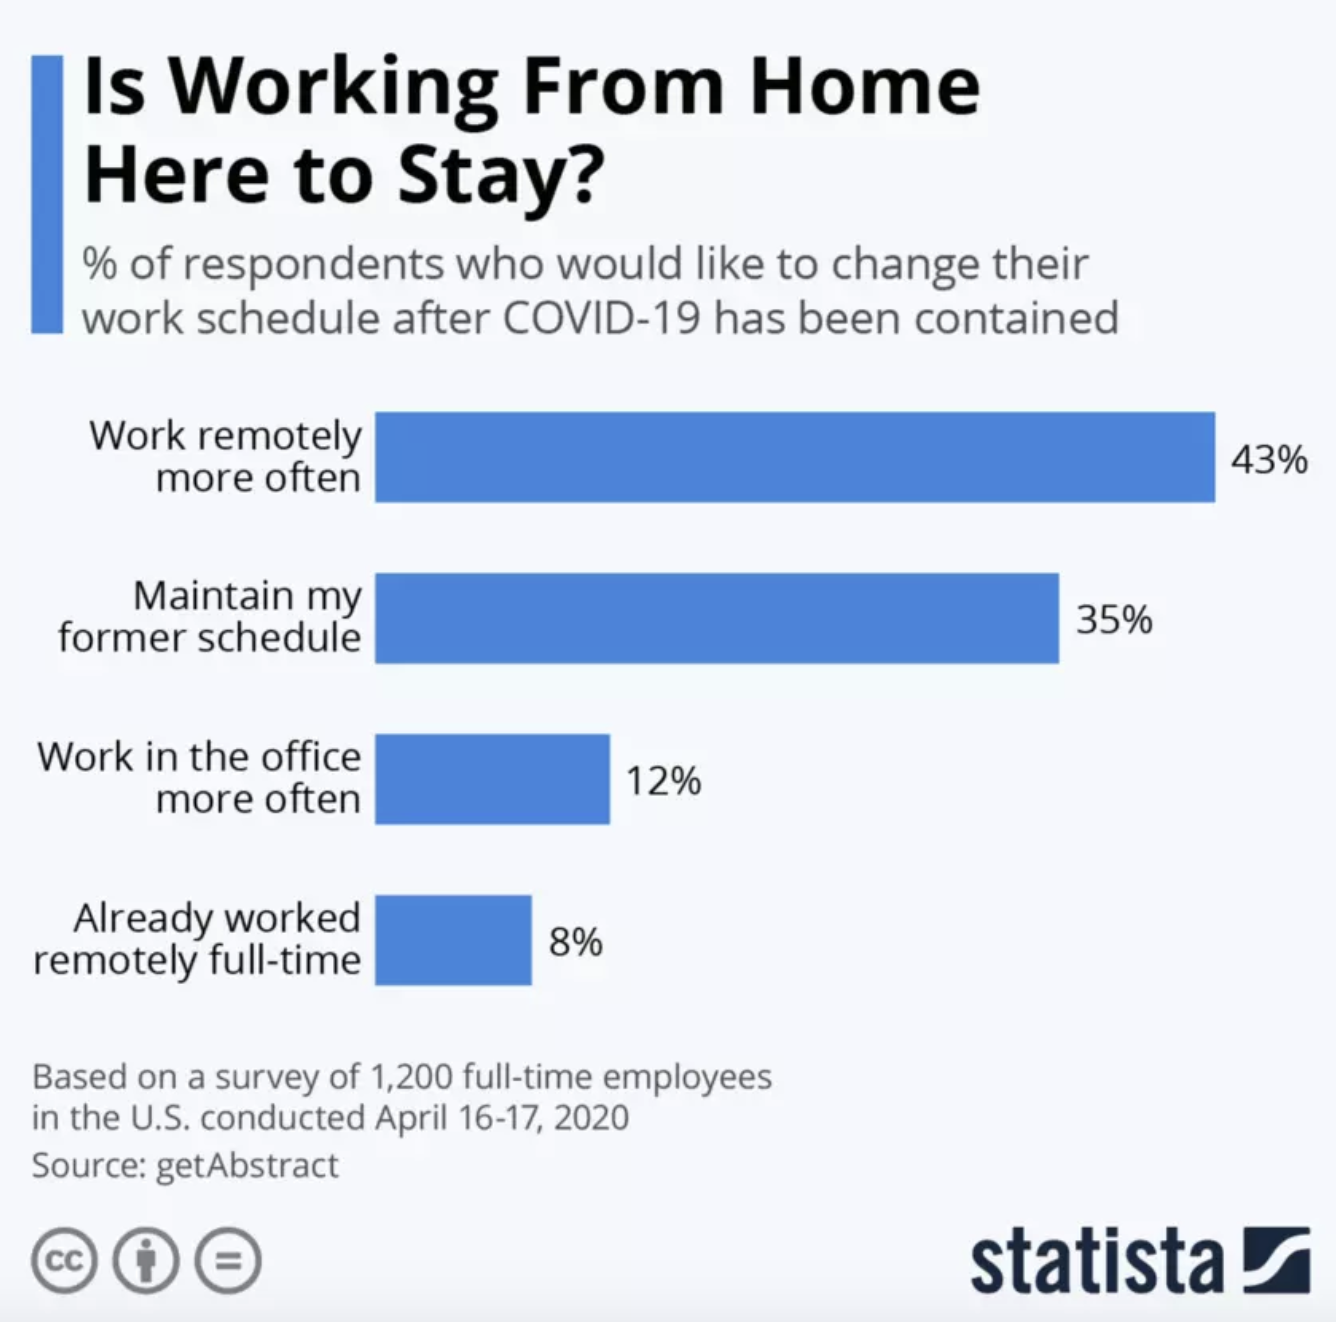 Attitudes towards working from home have changed significantly